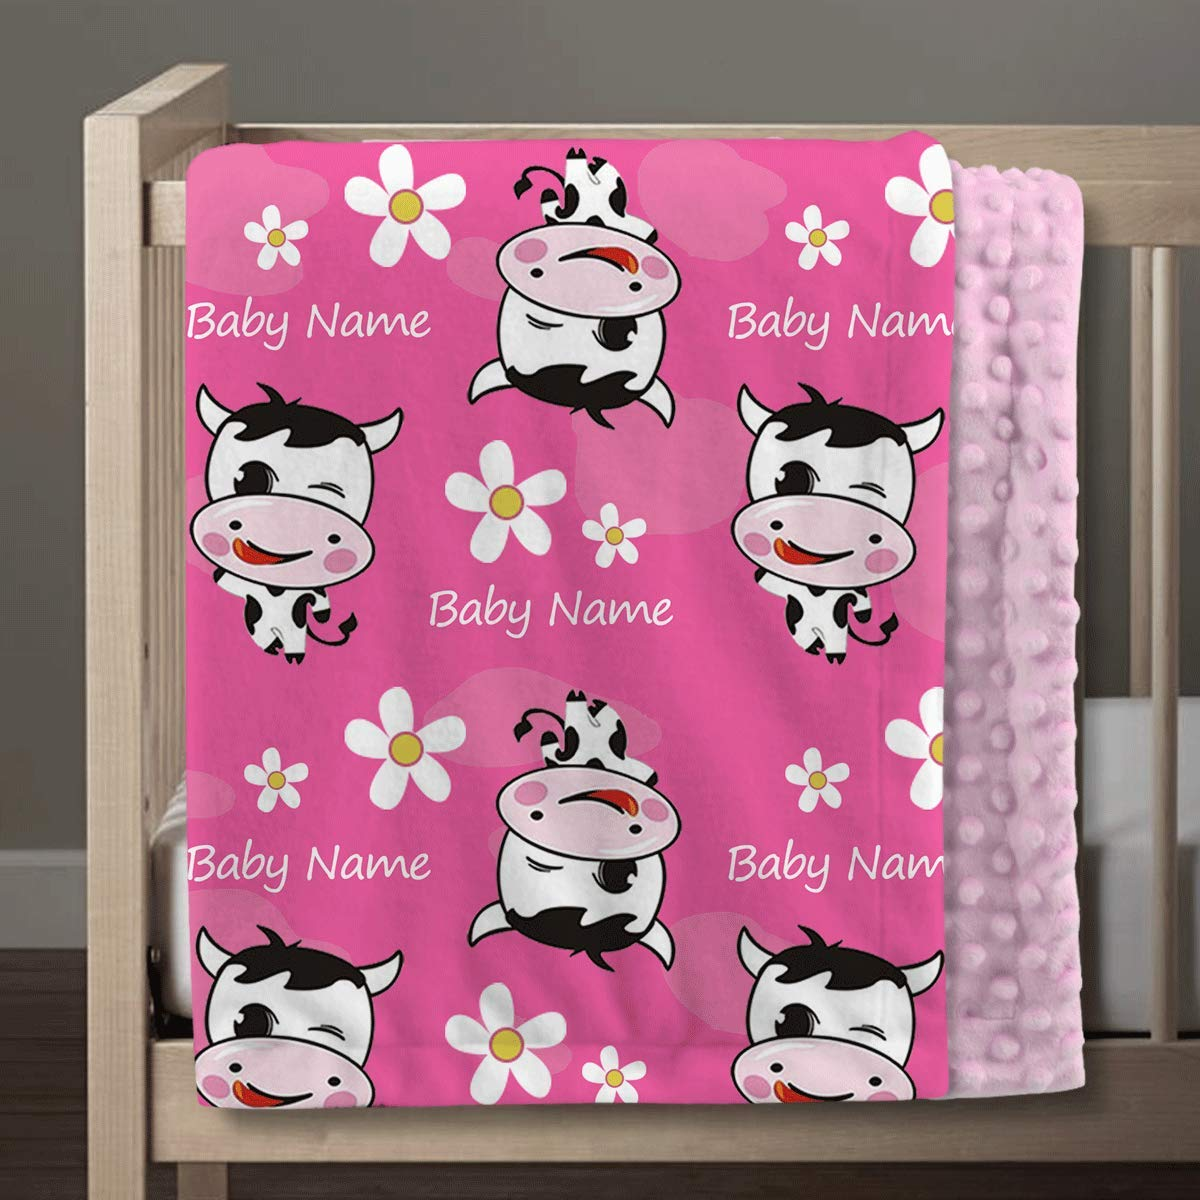 Customized Baby Newborn Gifts, Soft Plush and Cozy Minky Dot, Personalized Baby Lovely Cow Blankets for Girls with Name, 30